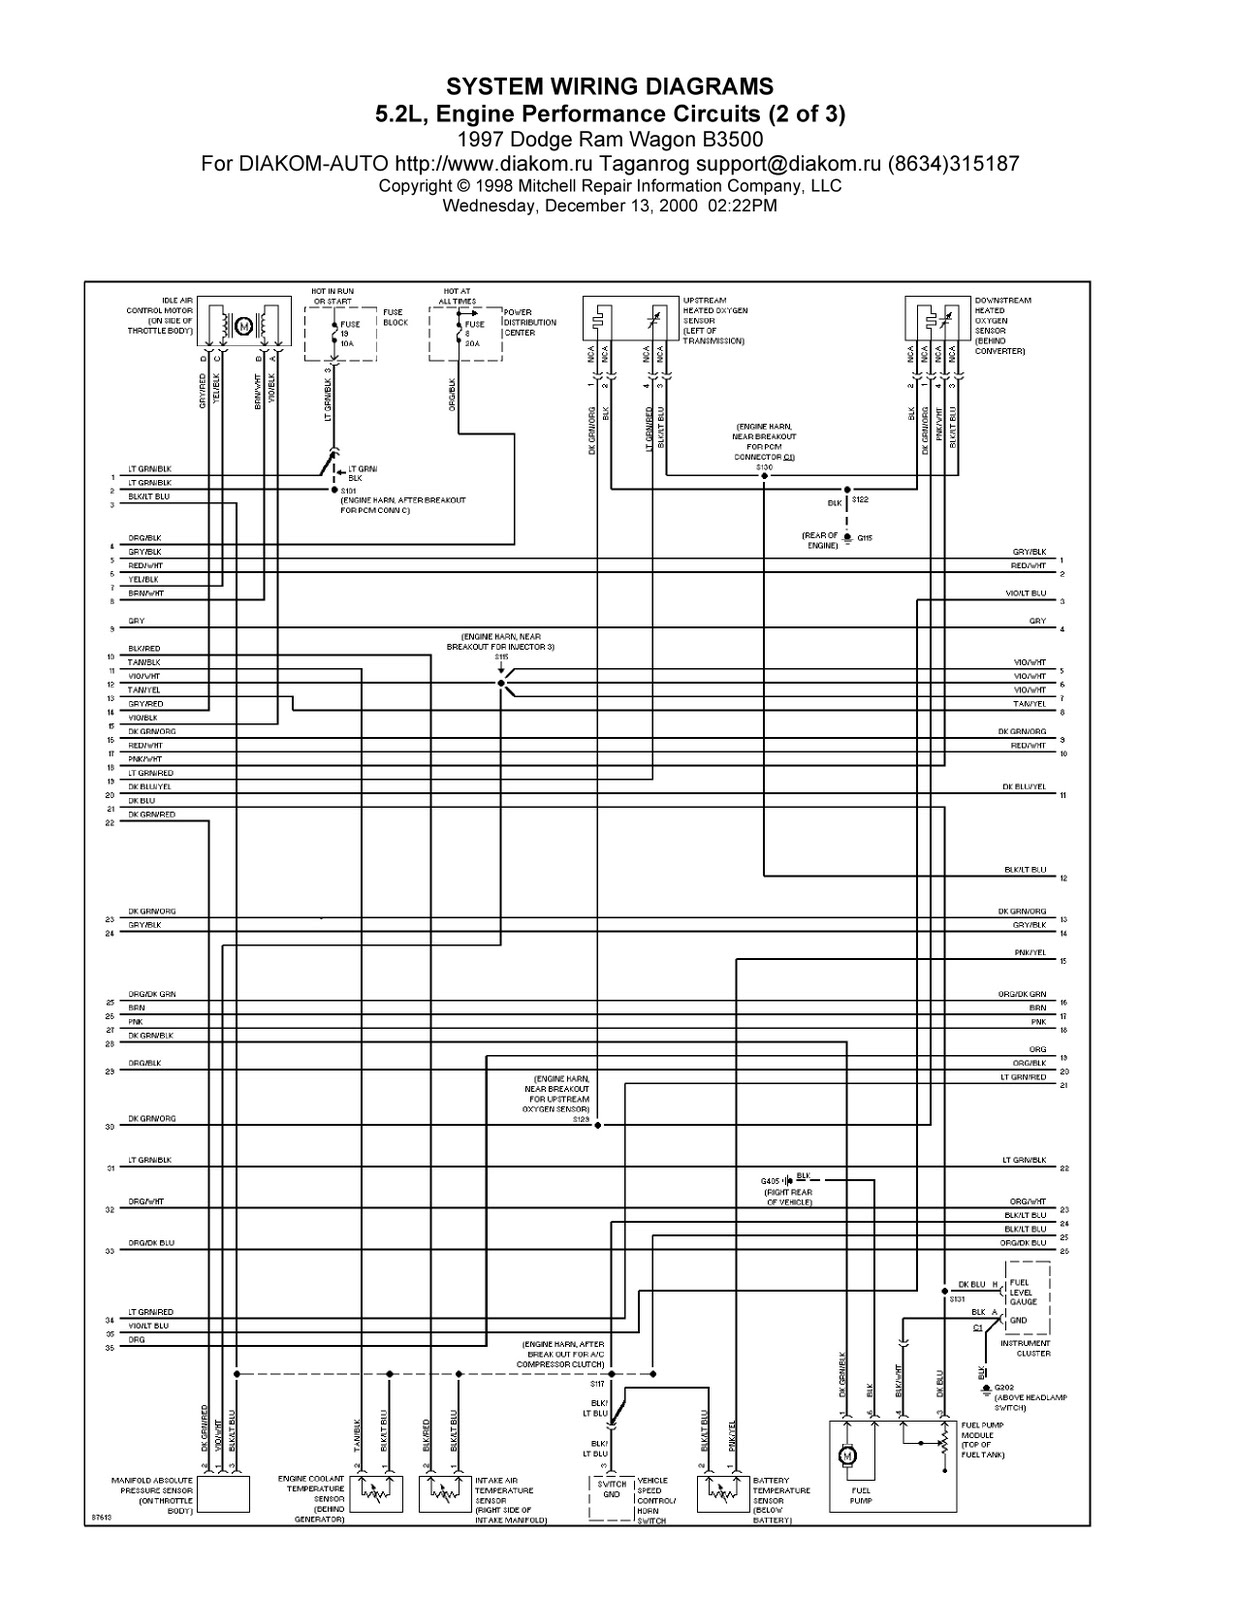 2005 dodge ram 3500 wiring diagram light 1997 dodge ram wagon b3500 system wiring diagram 5,2l ... dodge ram 3500 wiring diagram